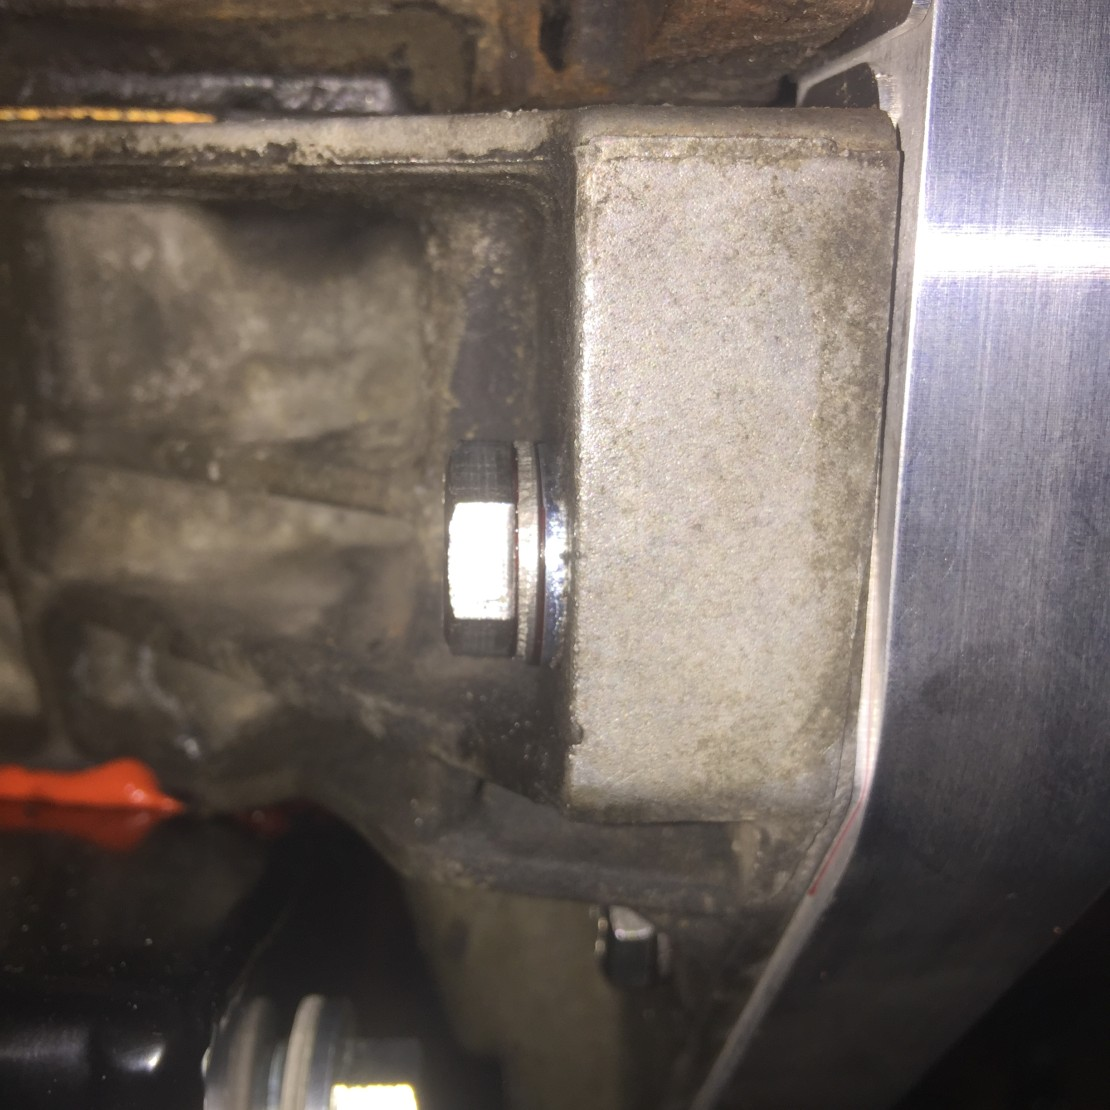 Washer Shims – I think all but one of the bolts required an extra washer or two to shim the bolts to the proper depth.